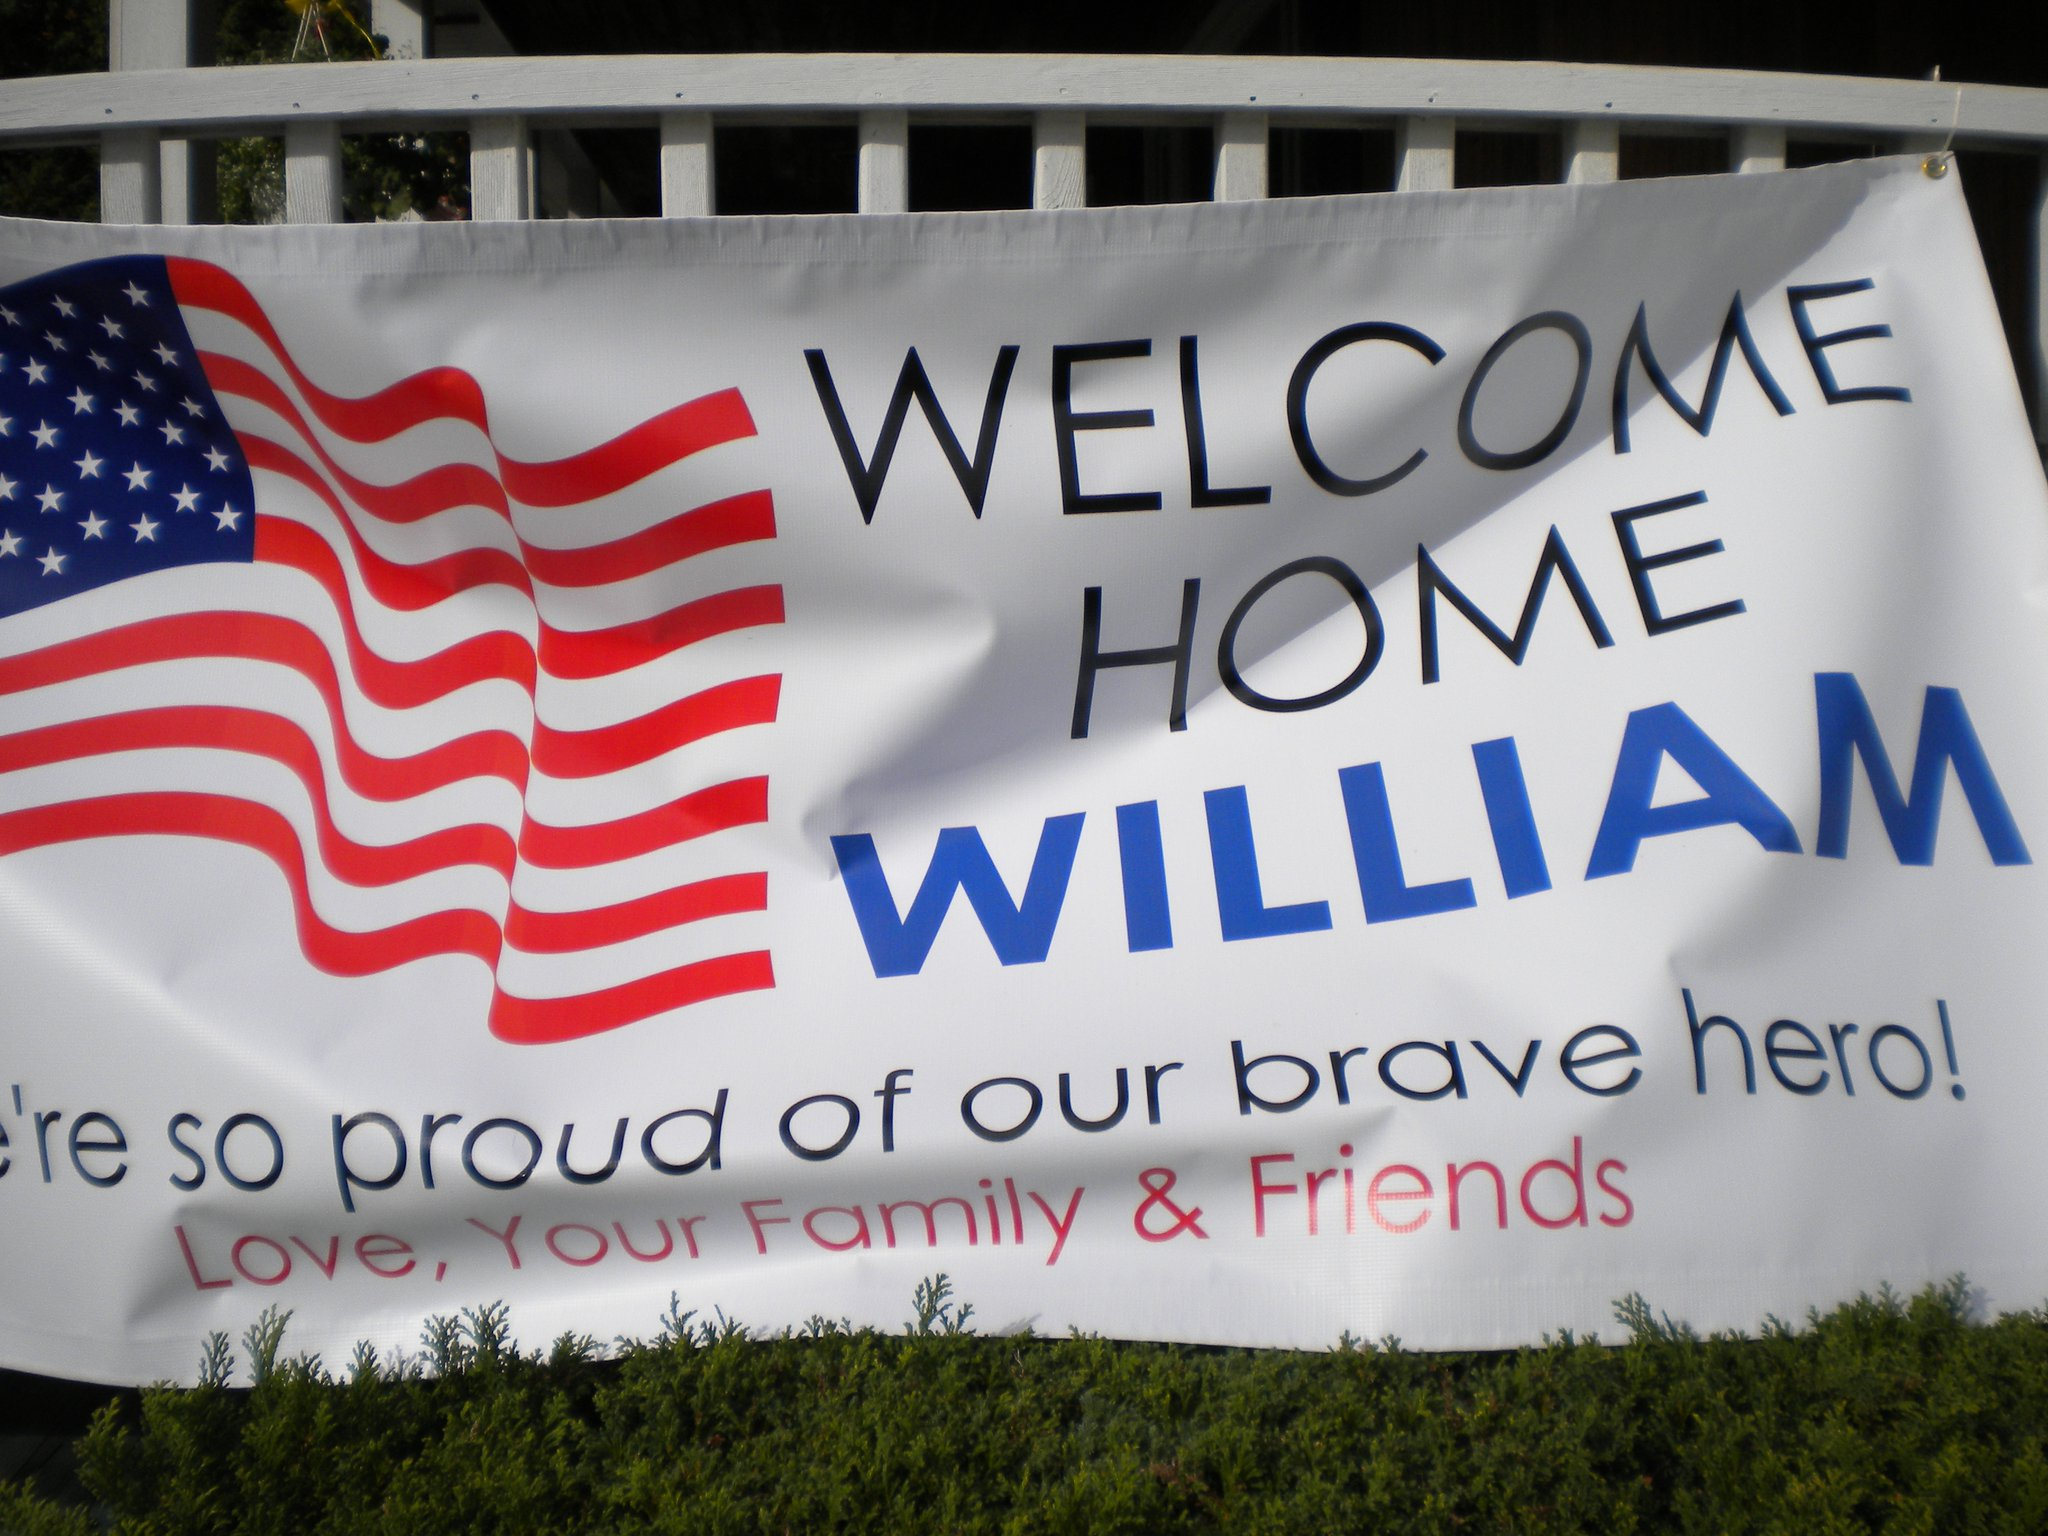 patriotic homecoming sign